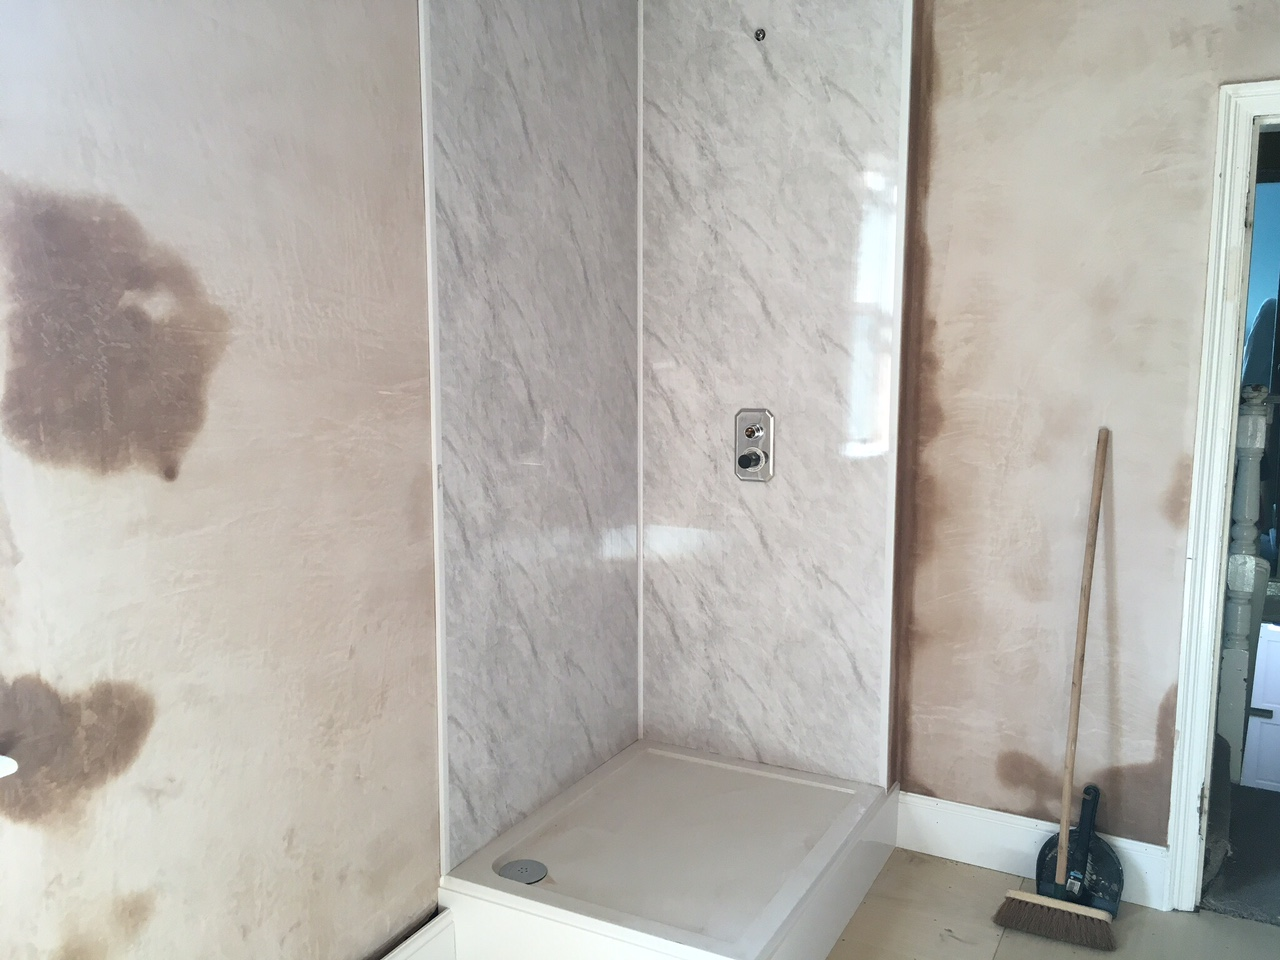 image2 - Customer's Shower Installation